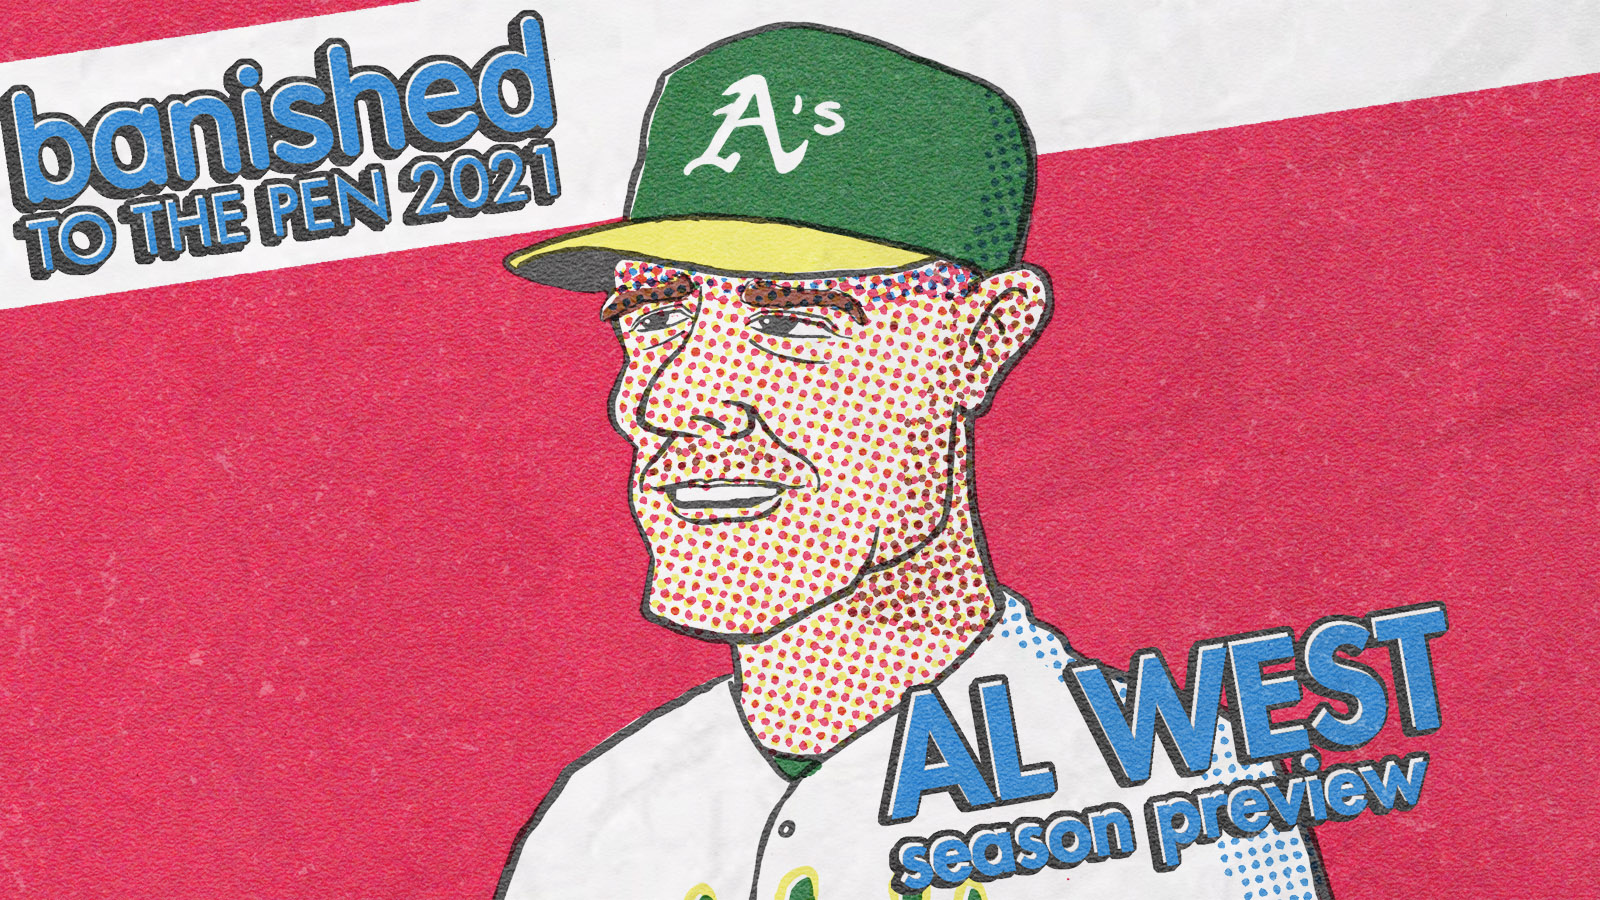 Season Previews 2021 - AL West (Matt Chapman)